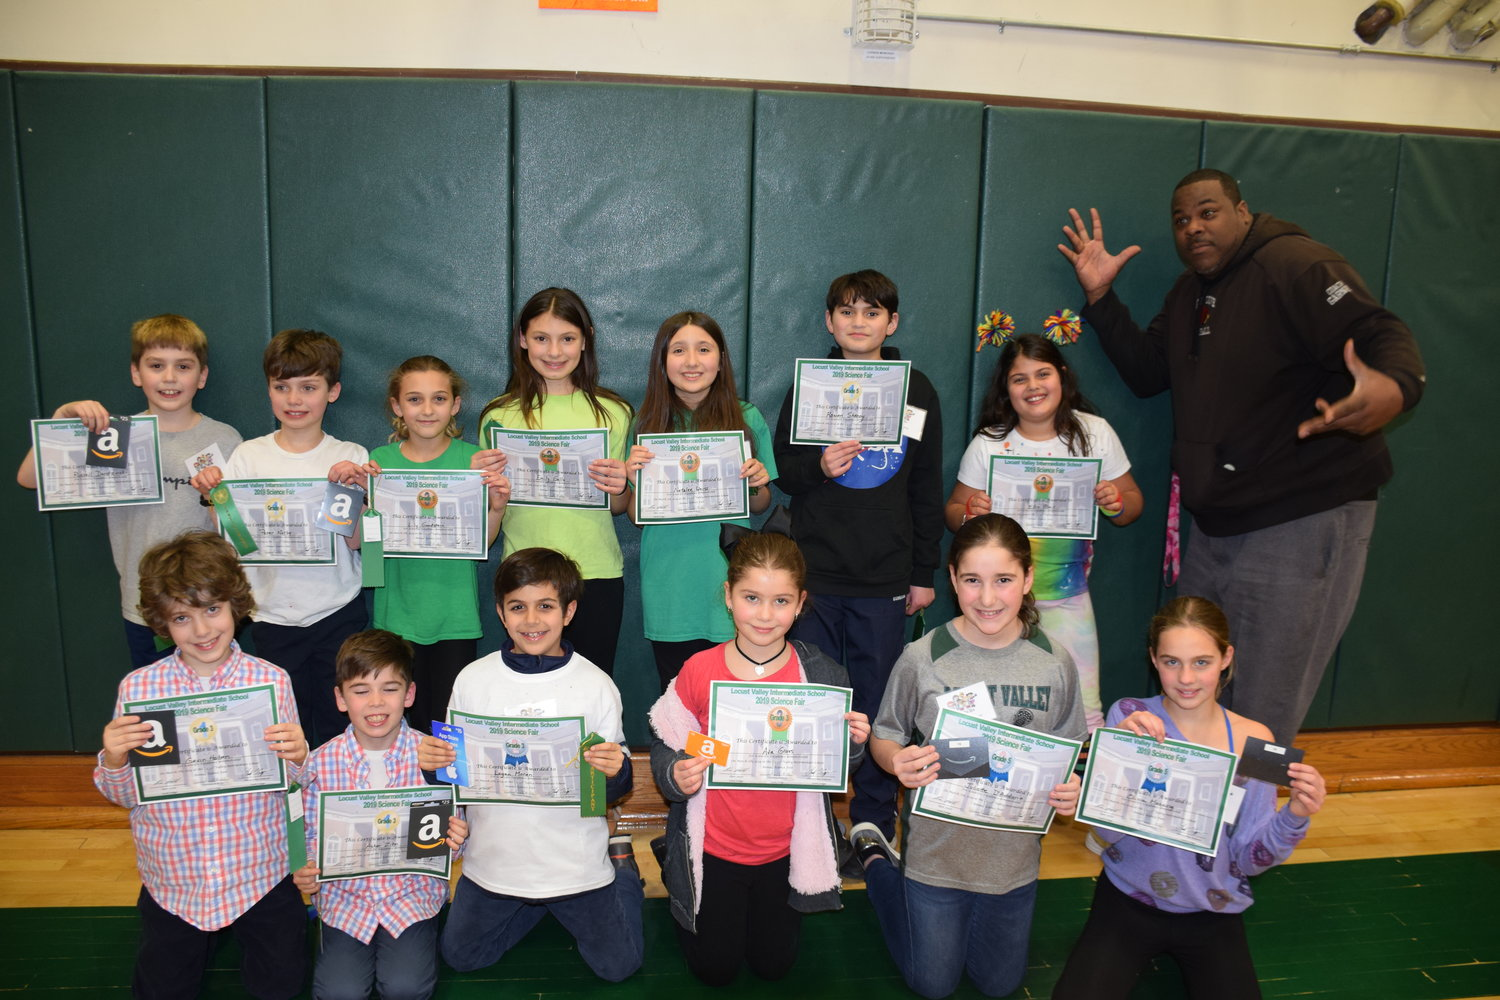 Damon Garner, a security guard in the Locust Valley School District, said he was blown away by the projects at Locust Valley Intermediate School's recent Science Fair.